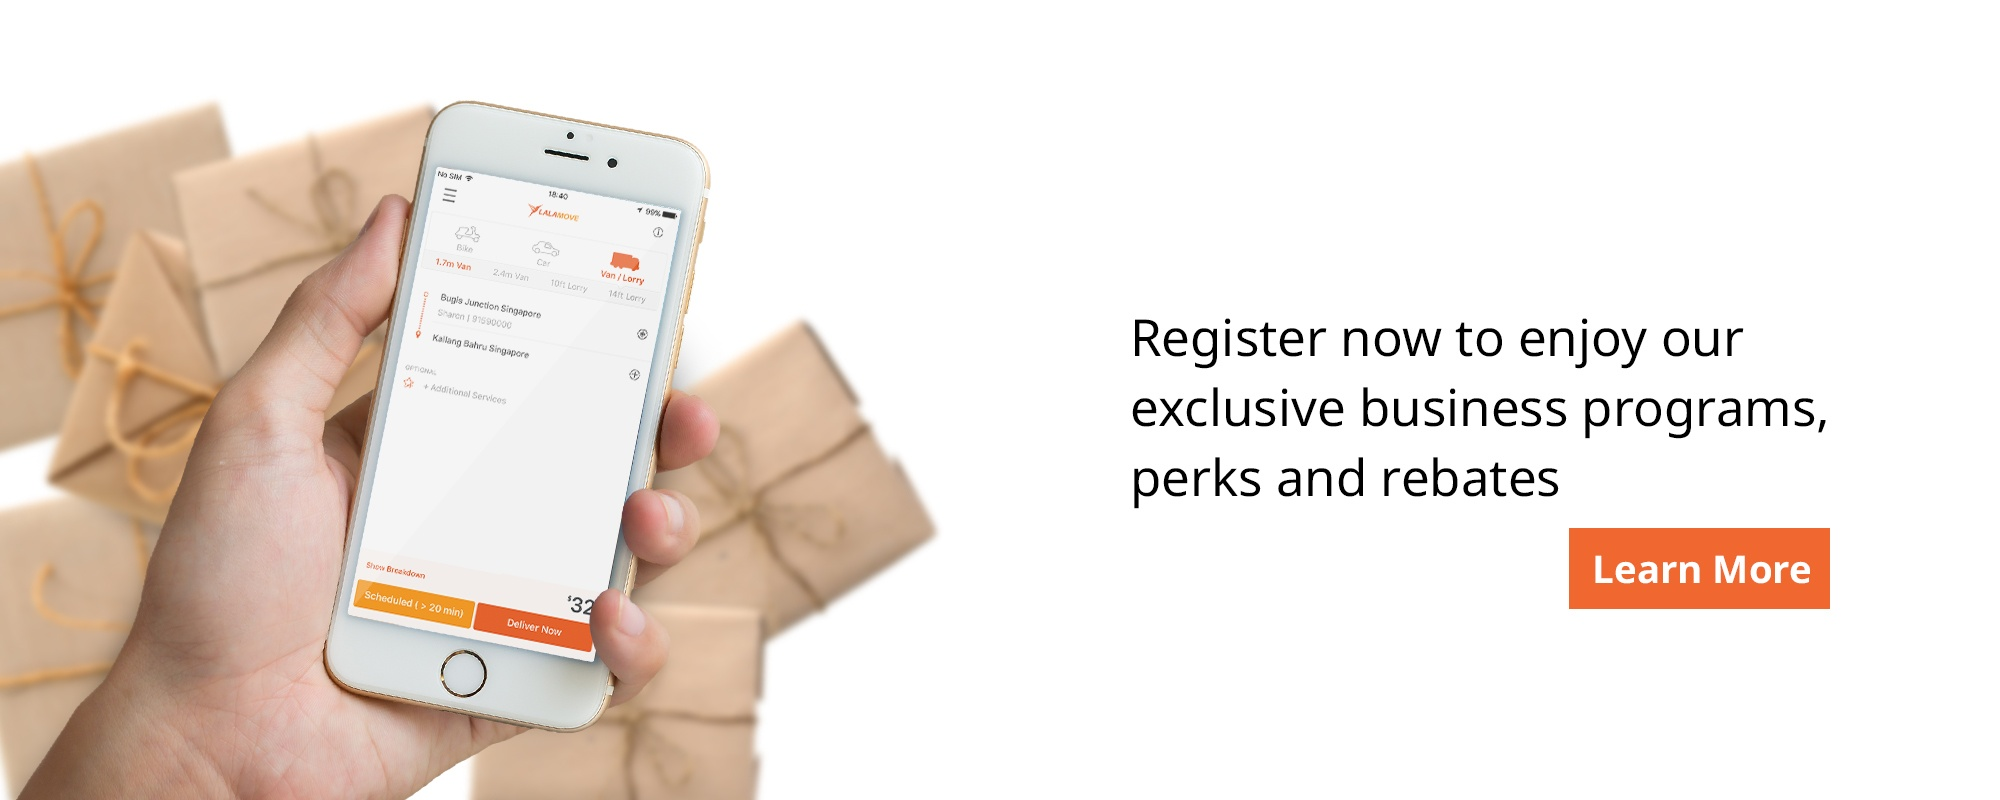 Register now to enjoy our exclusive business programs, perks and rebates